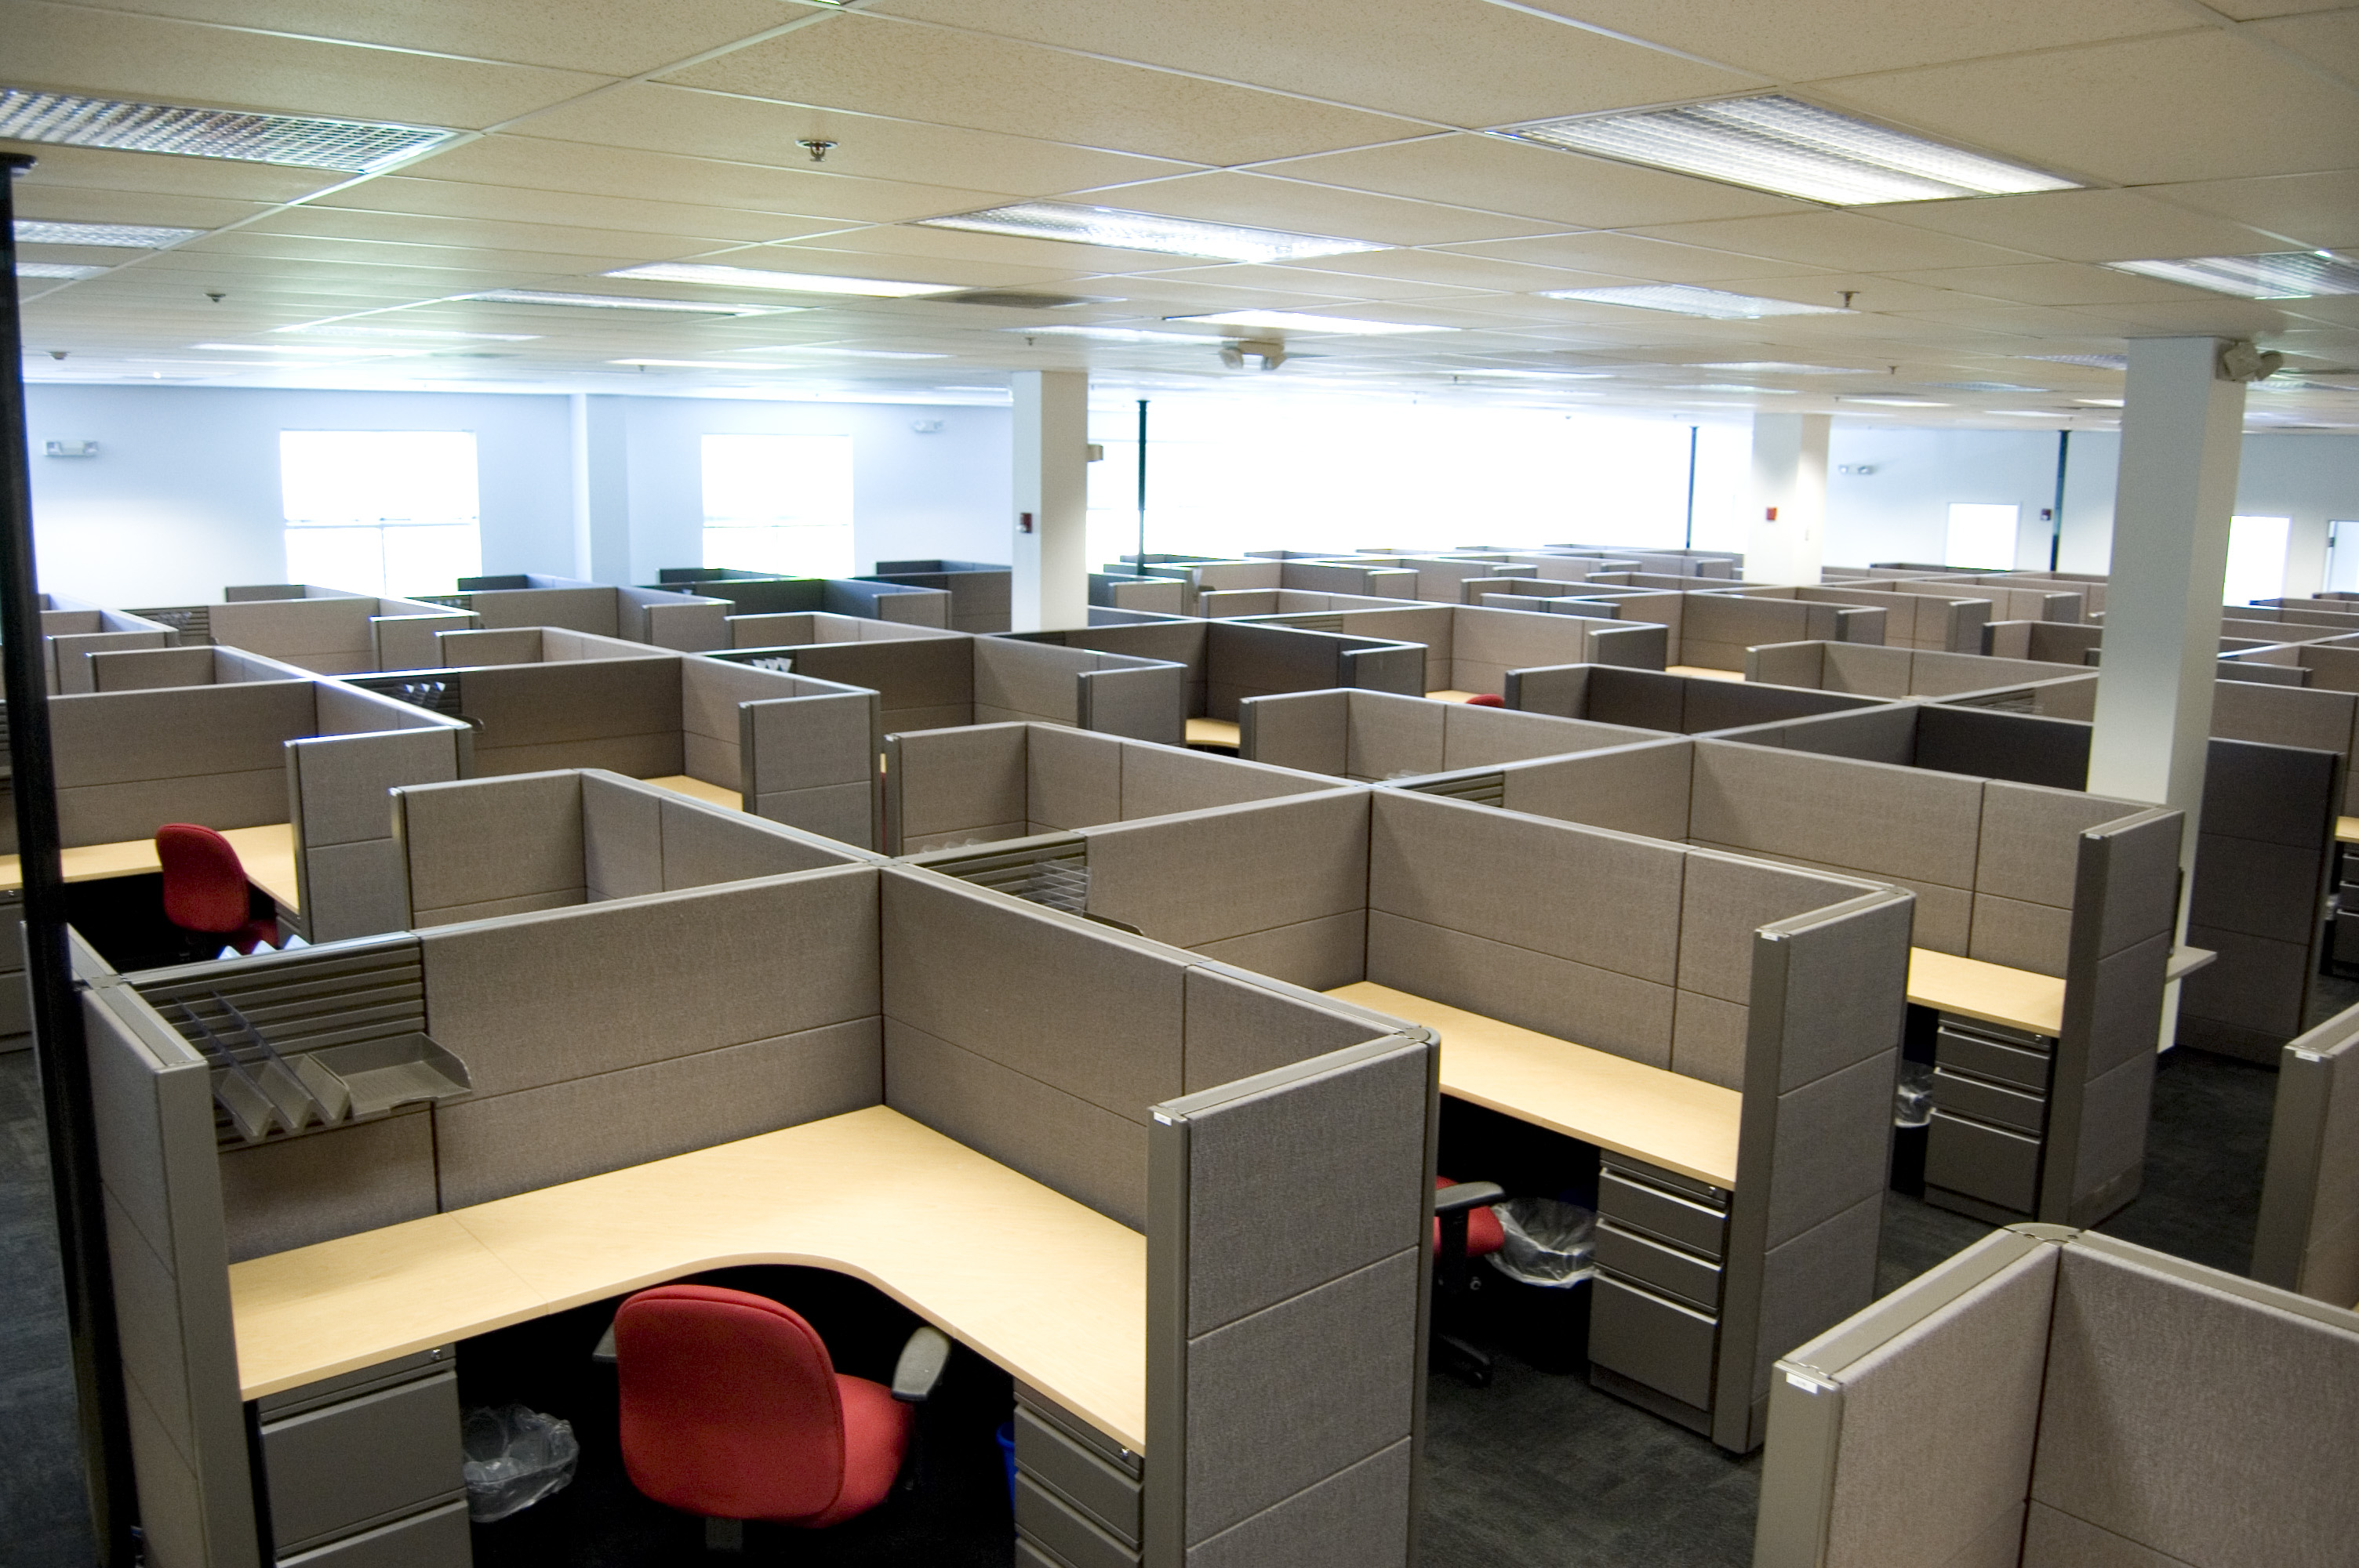 Cubicles Vs Open Workspace Which Do You Prefer Ar15 Com